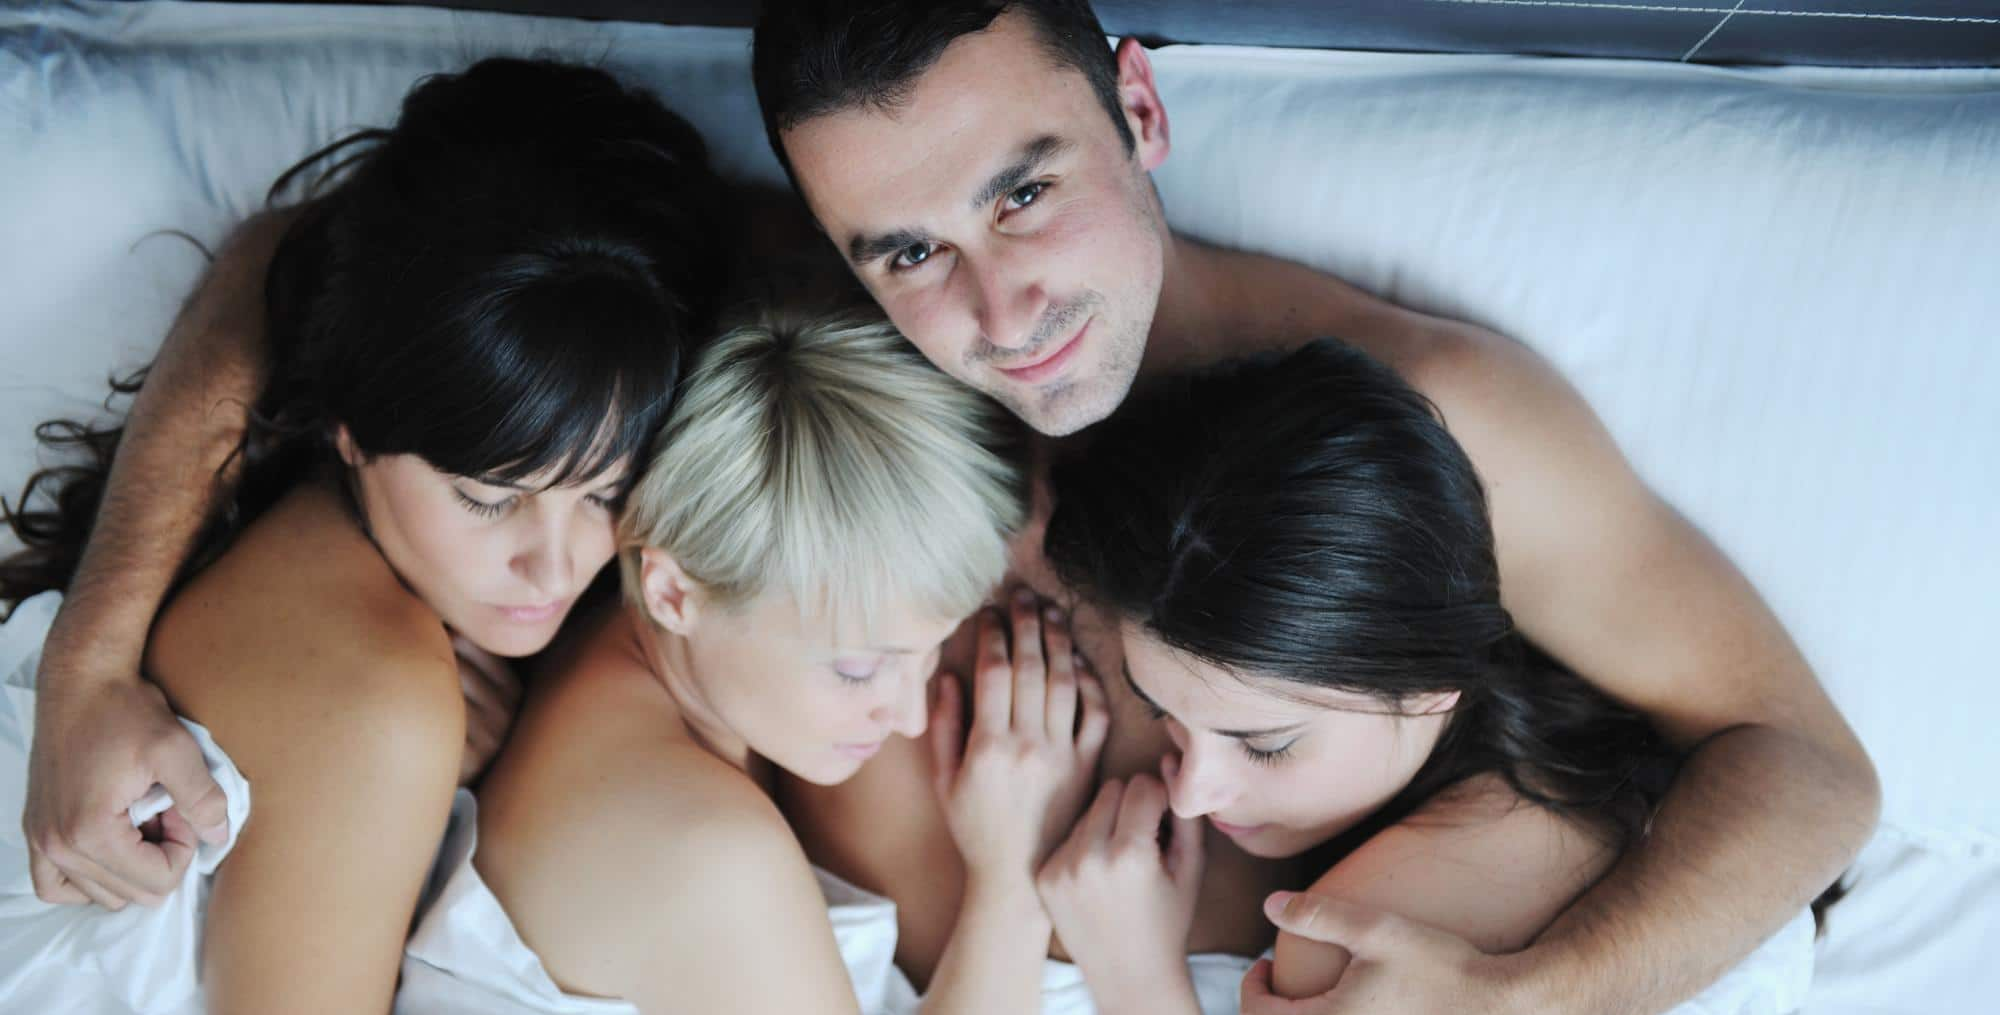 Real Forbidden Swingers Photos And Pics